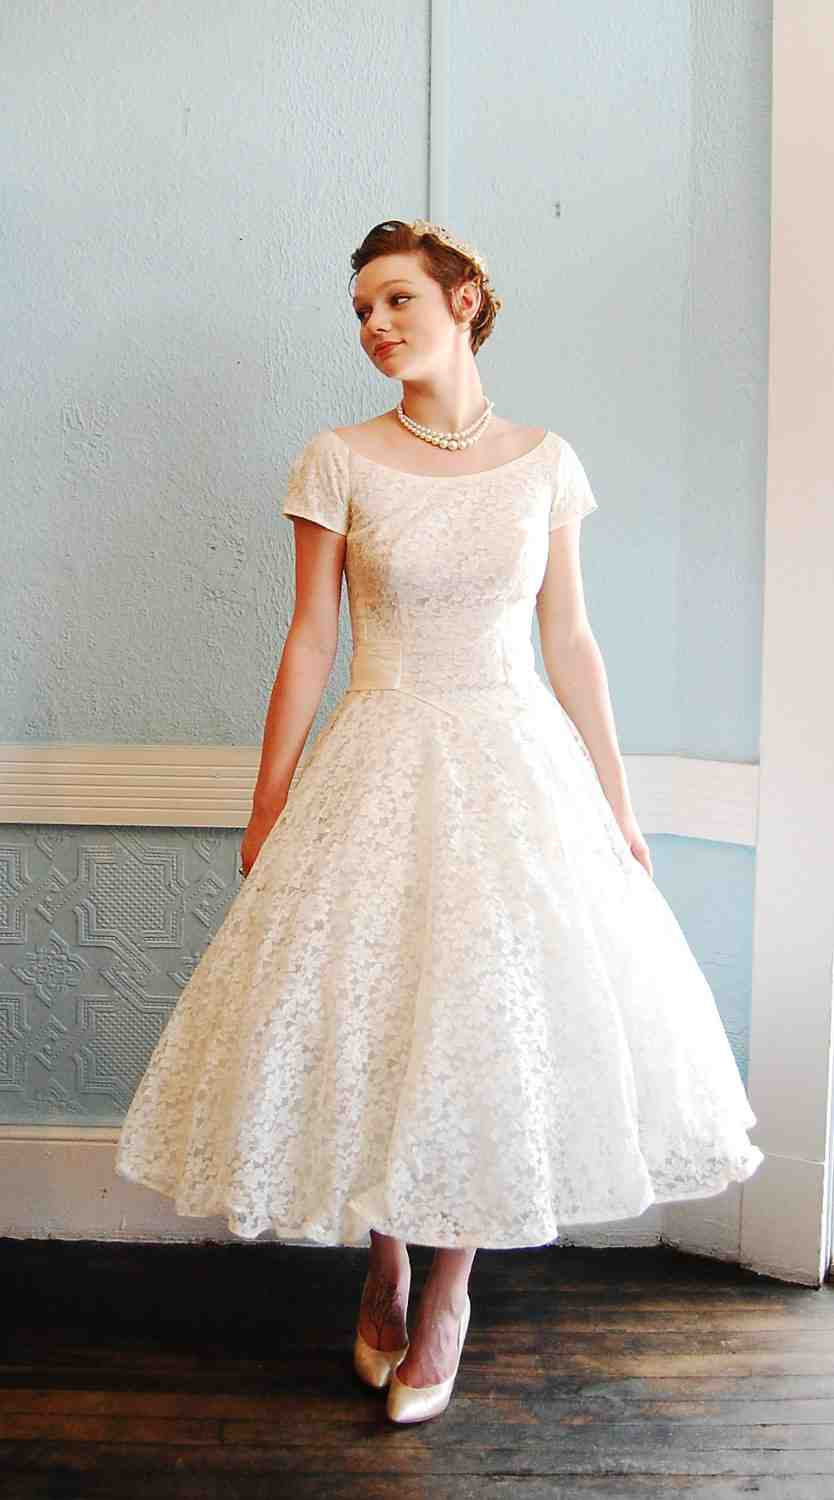 Tea Length Wedding Dresses Choose For Casual Afternoon. Petite Fit And Flare Wedding Dresses. Silver Or Gold Wedding Dresses. Famous Wedding Dresses In History. Wedding Dresses Greek Roman Style. Long Sleeve Embellished Wedding Dress. Hippie Wedding Dresses.com. Indian Wedding Dresses Up Games. Chiffon Wedding Dresses Pinterest